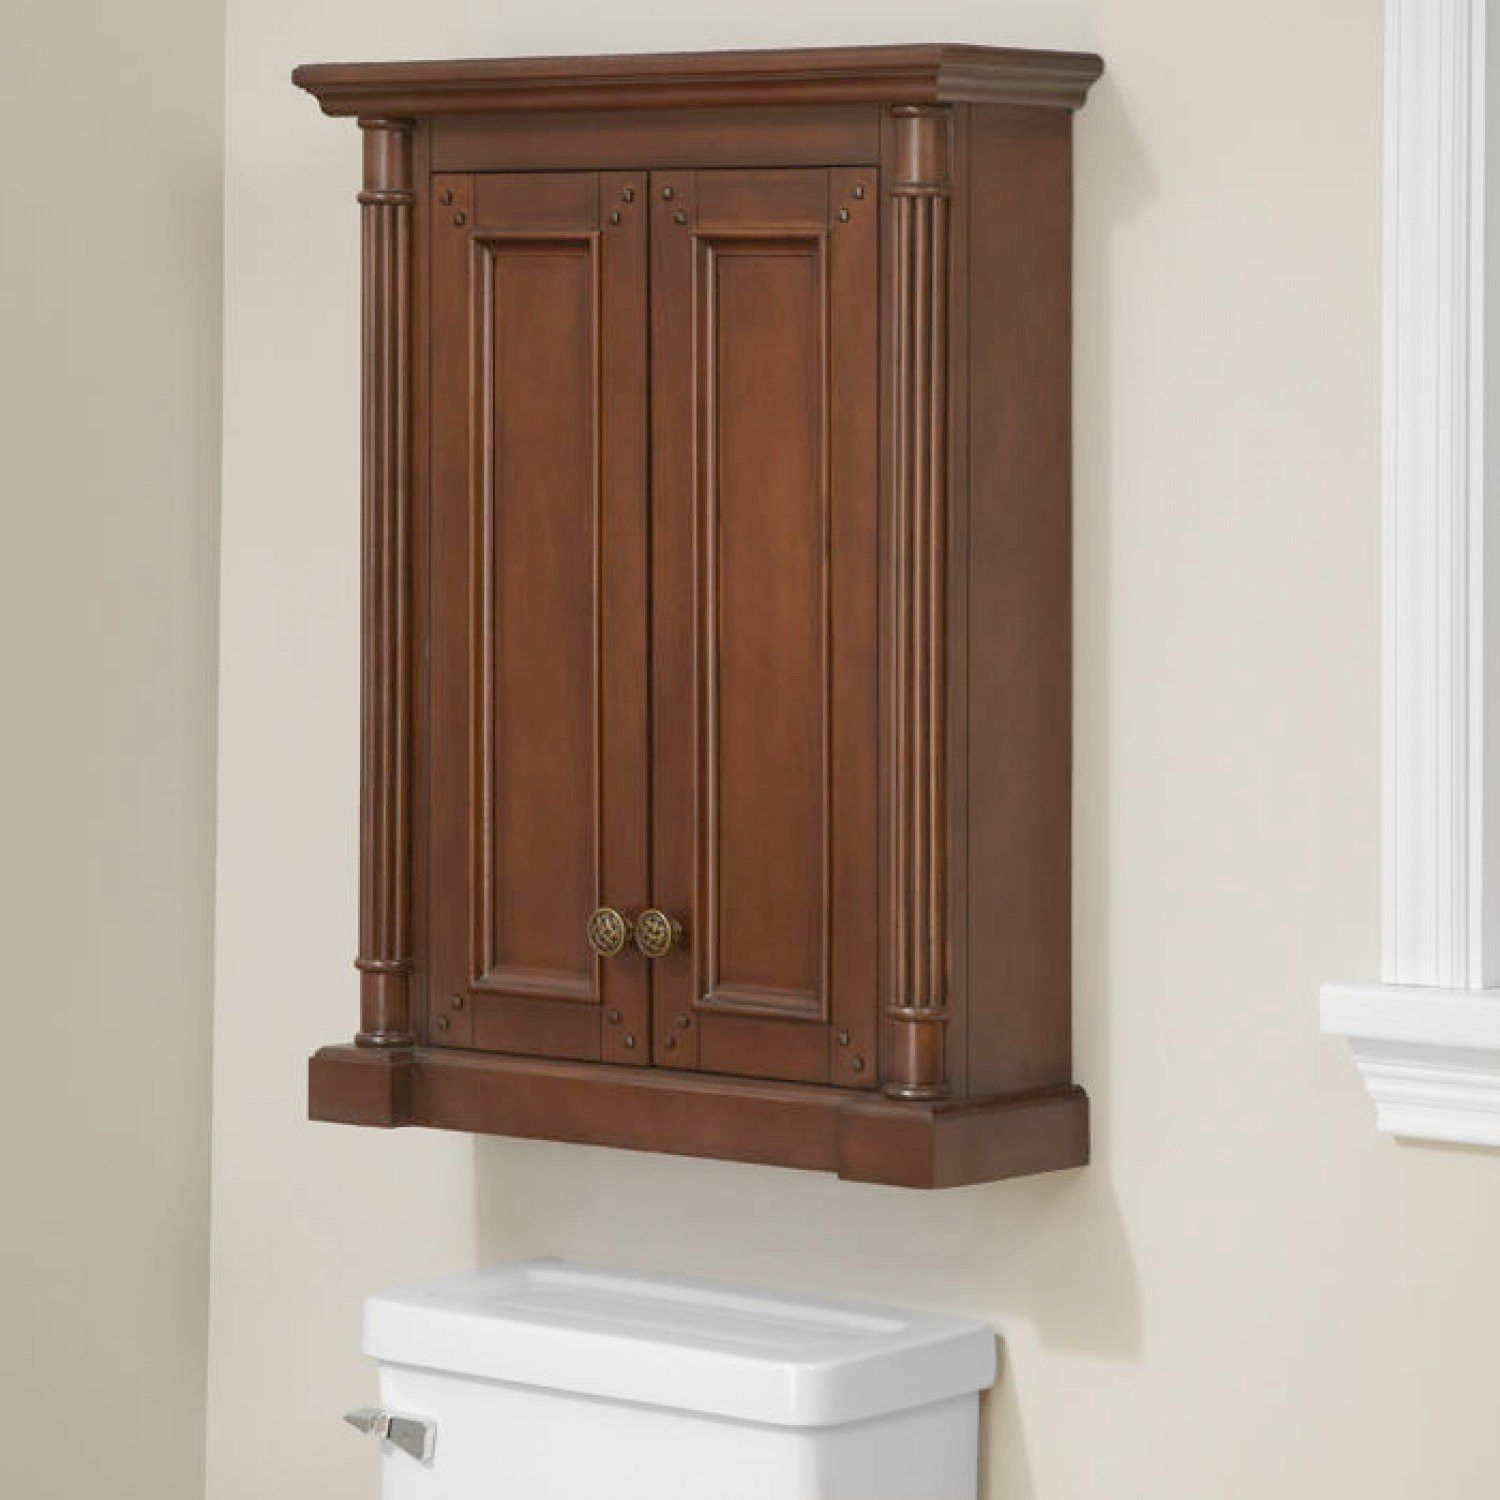 Exceptionnel 2019 Cherry Wood Medicine Cabinets   Best Kitchen Cabinet Ideas Check More  At ...